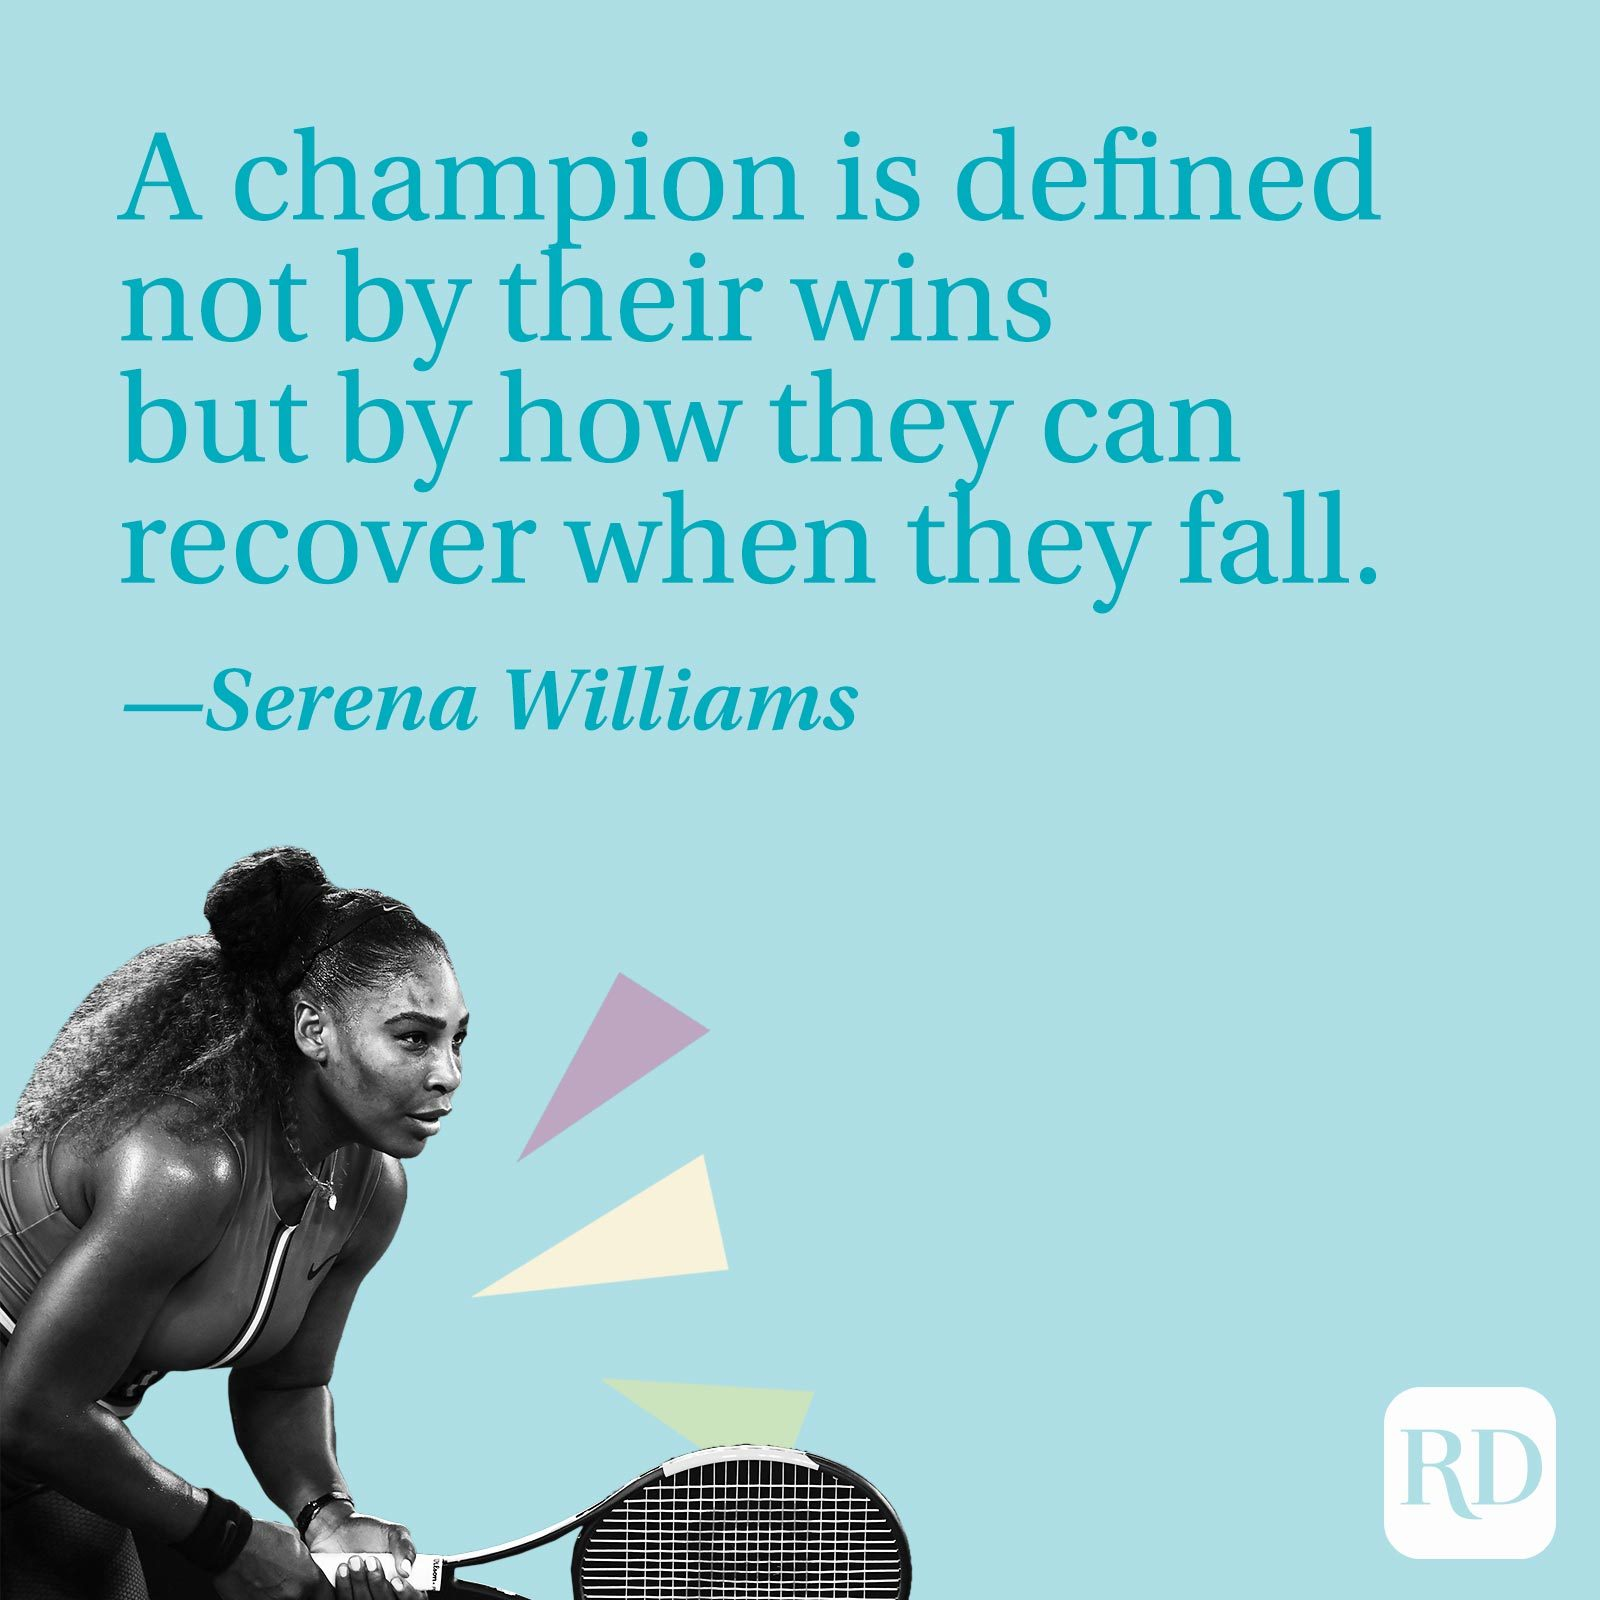 """""""A champion is defined not by their wins but by how they can recover when they fall."""" —Serena Williams"""